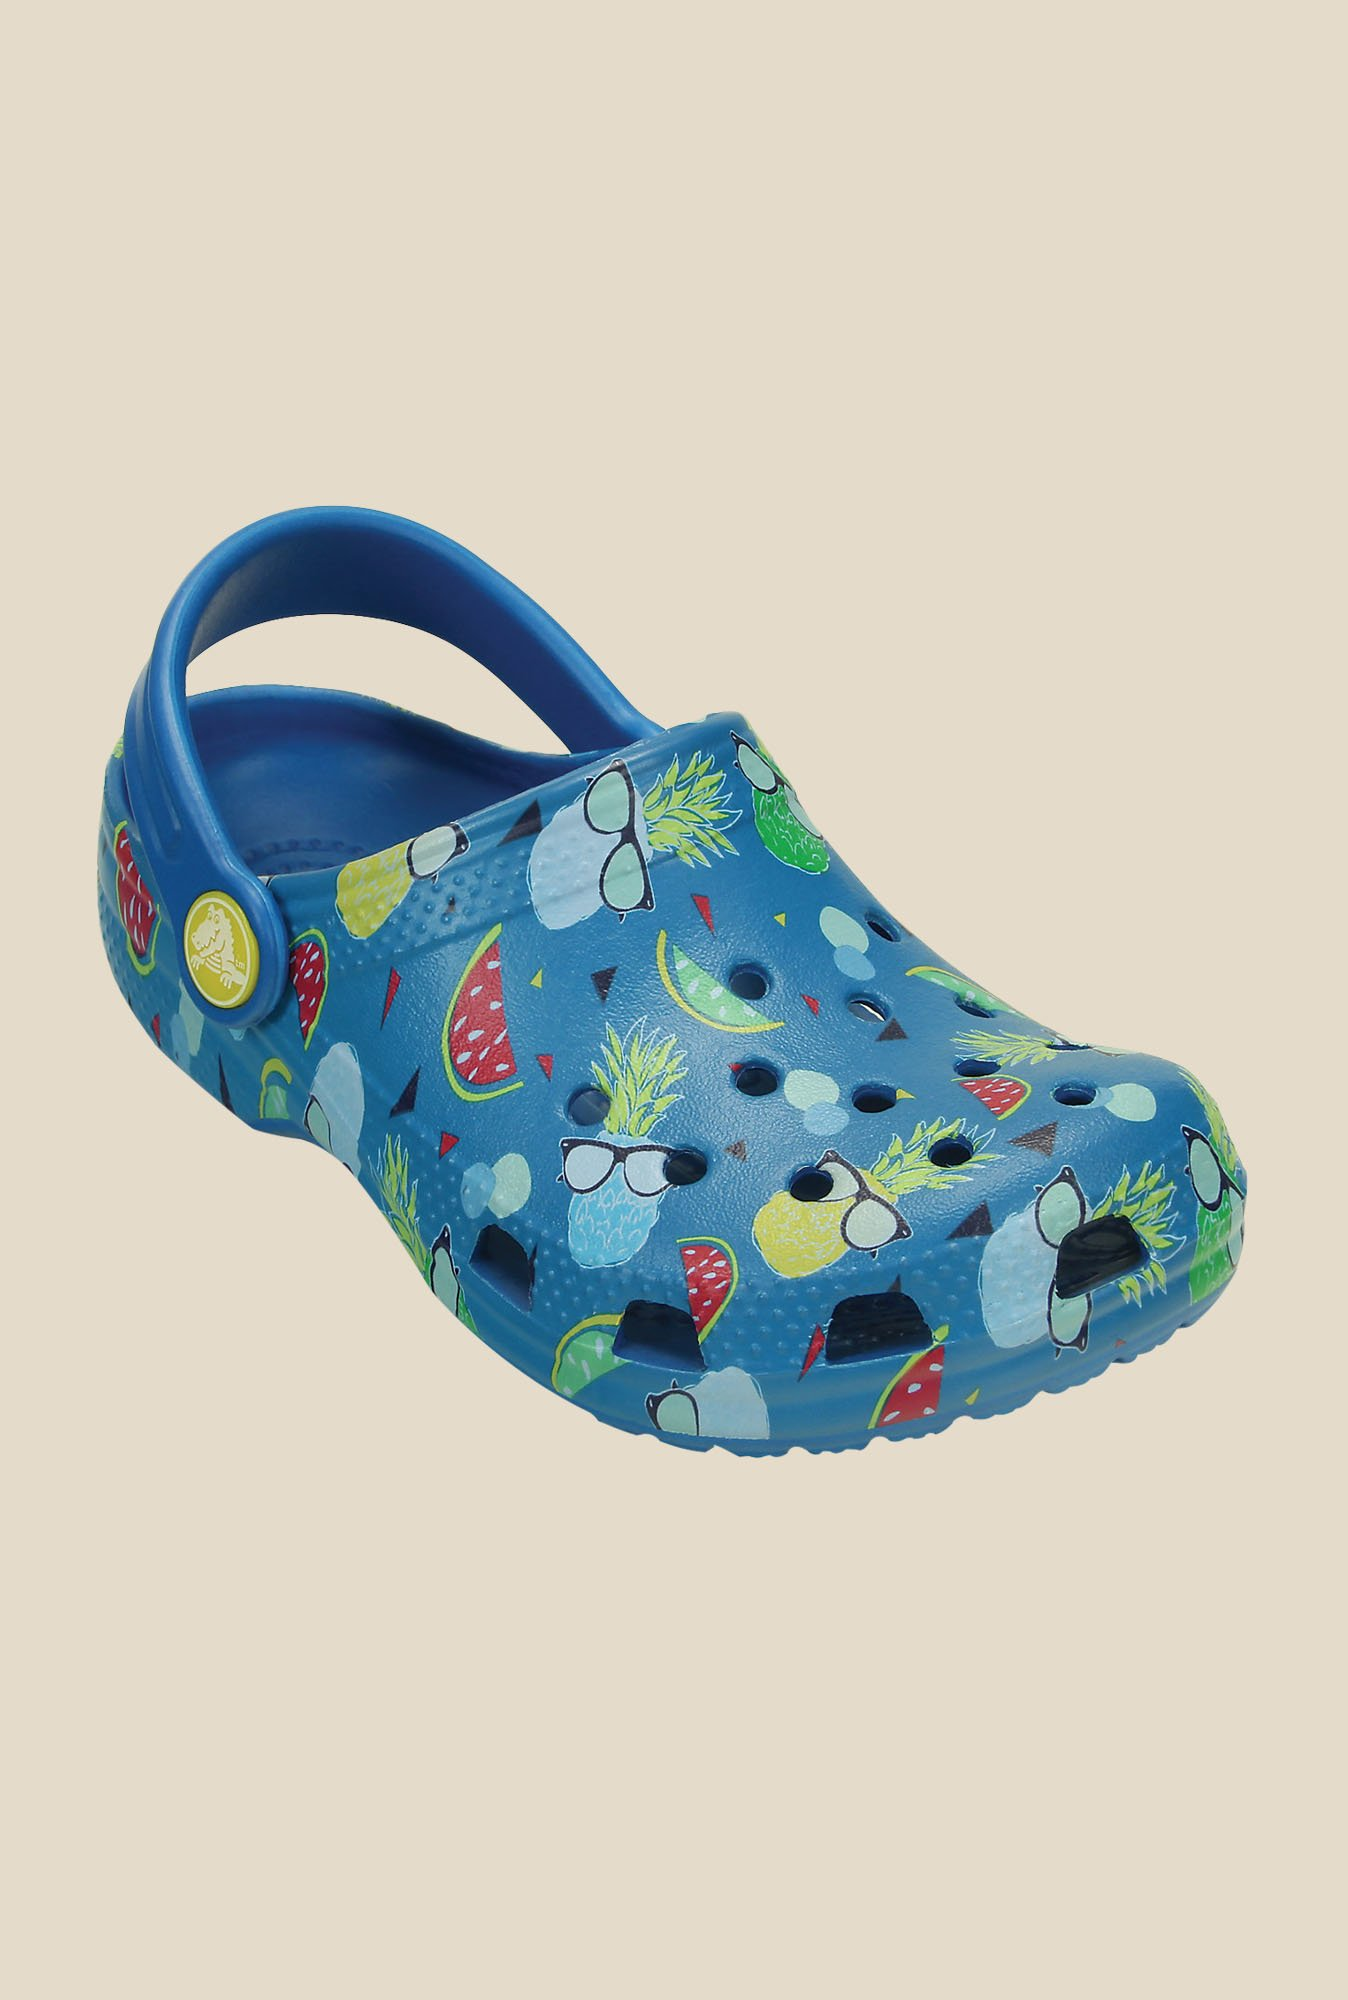 Crocs Classic Summer Fun Ultramarine Clogs